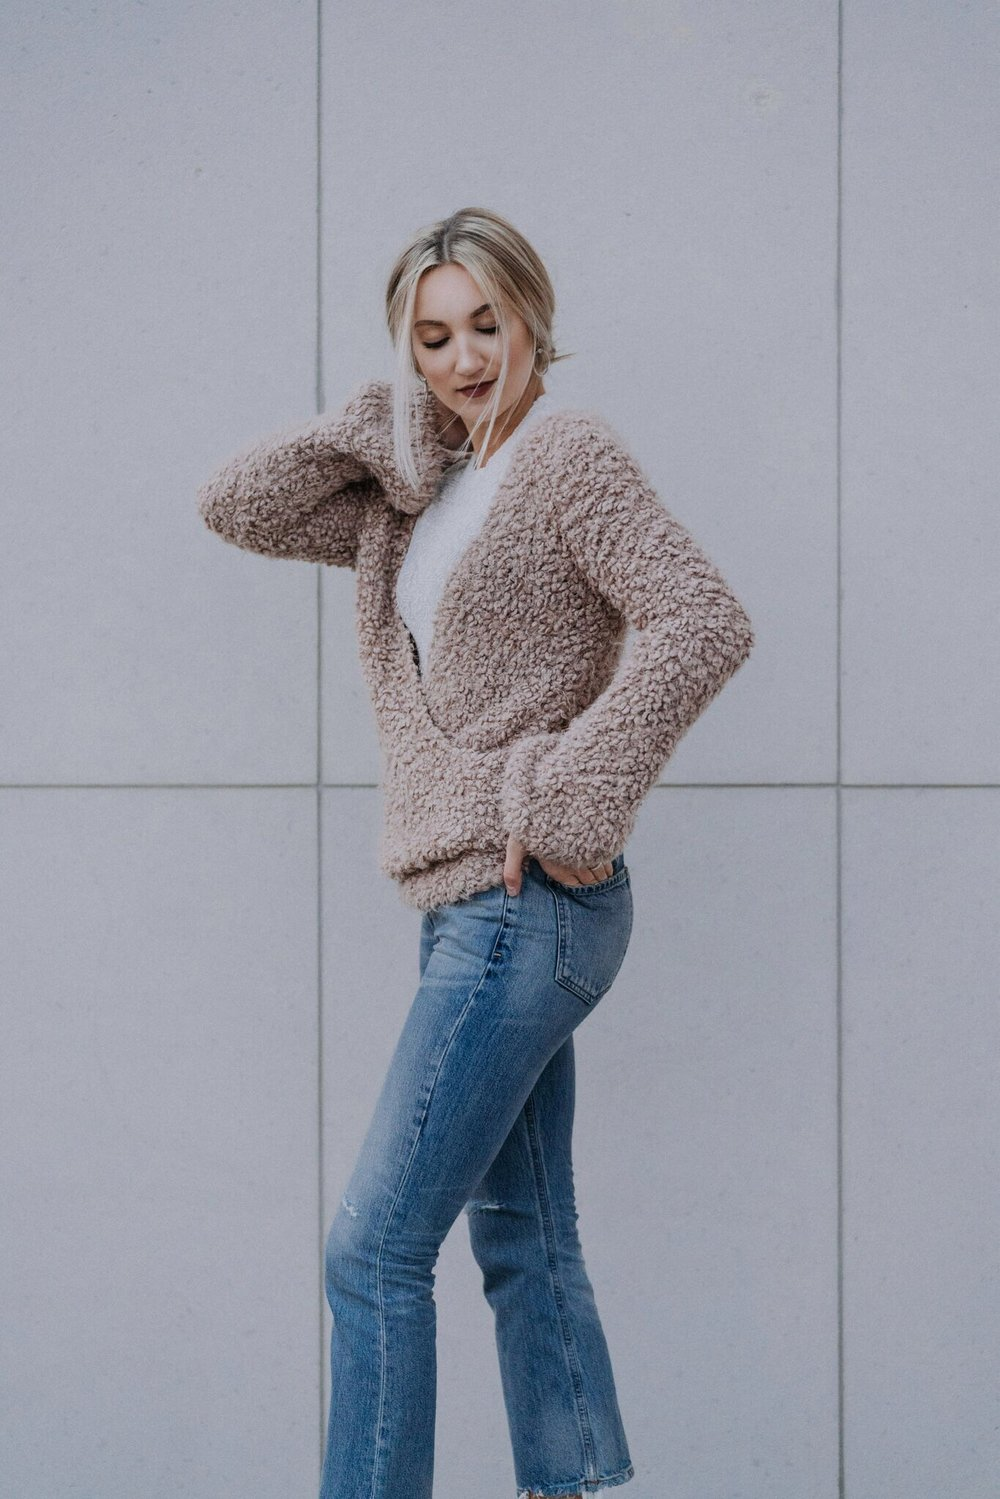 aritzia ootd brittany laurén brittanylaurens saskatoon fashion blog canada inspiration outfits fall citizens of humanity estella flare